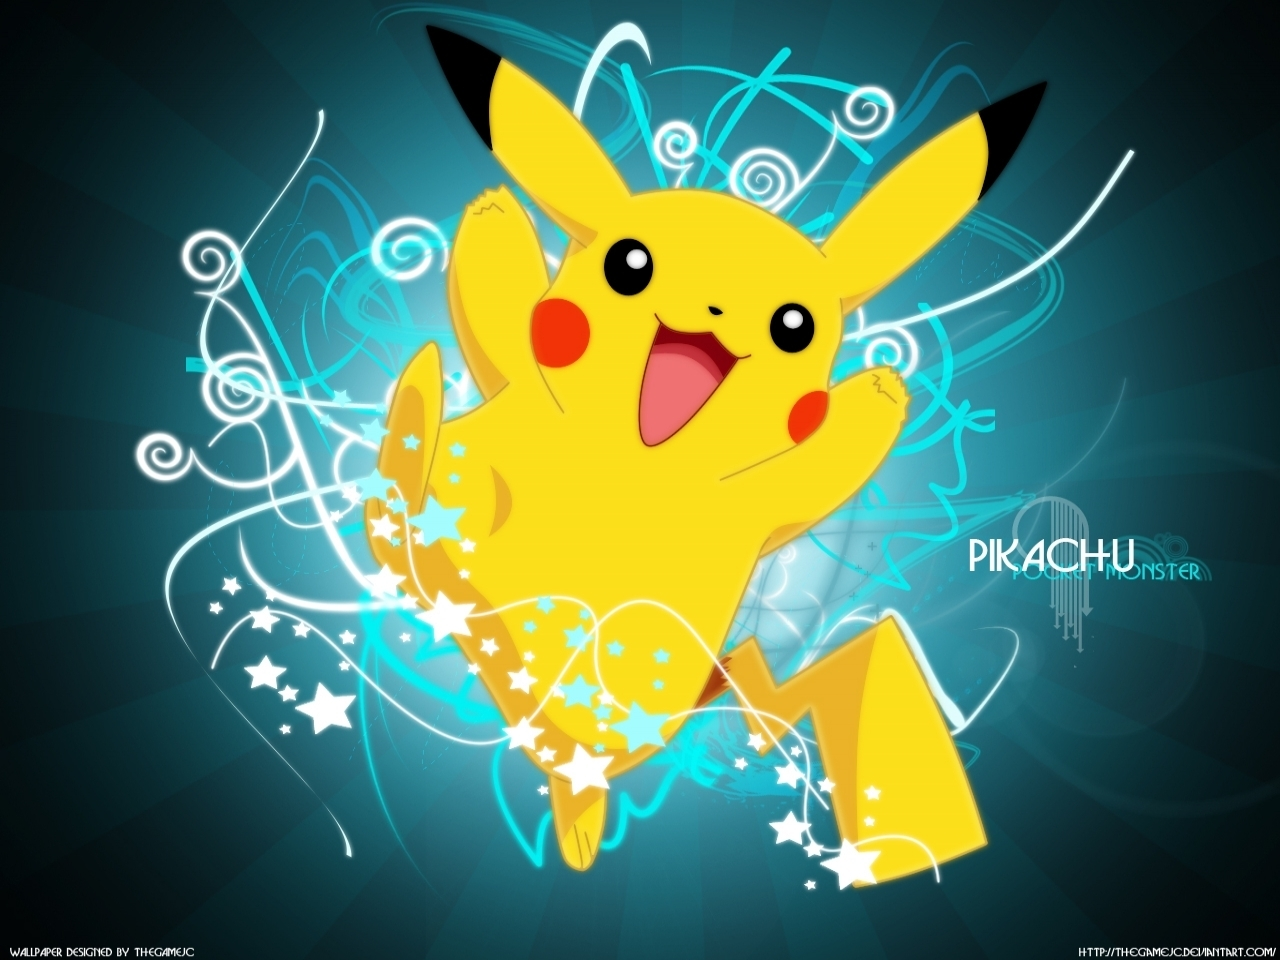 Electric Type Pokemon images pikachu wallpaper HD ...